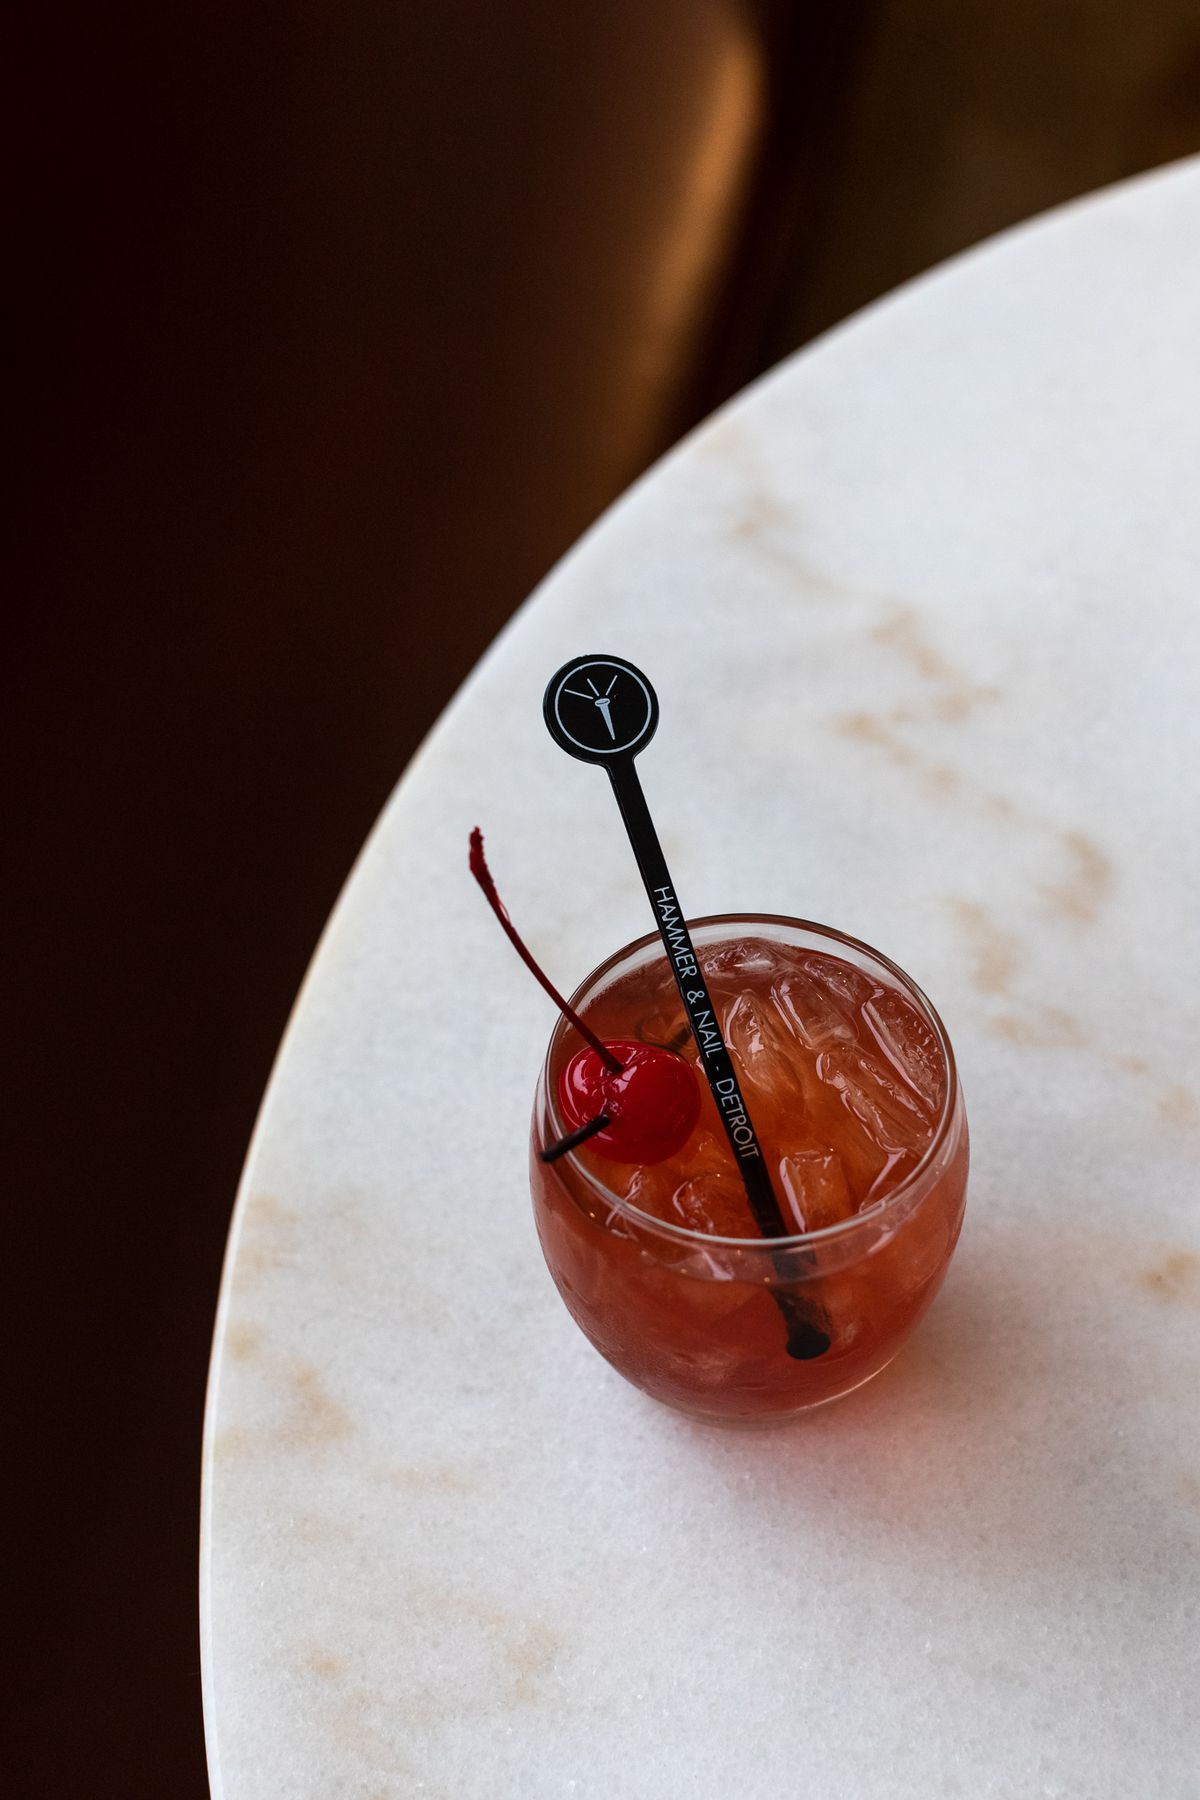 A cocktail in a curved glass with ice, a cherry, and a hammer and nail swizzel stick is shown from above on a round, white marble table.